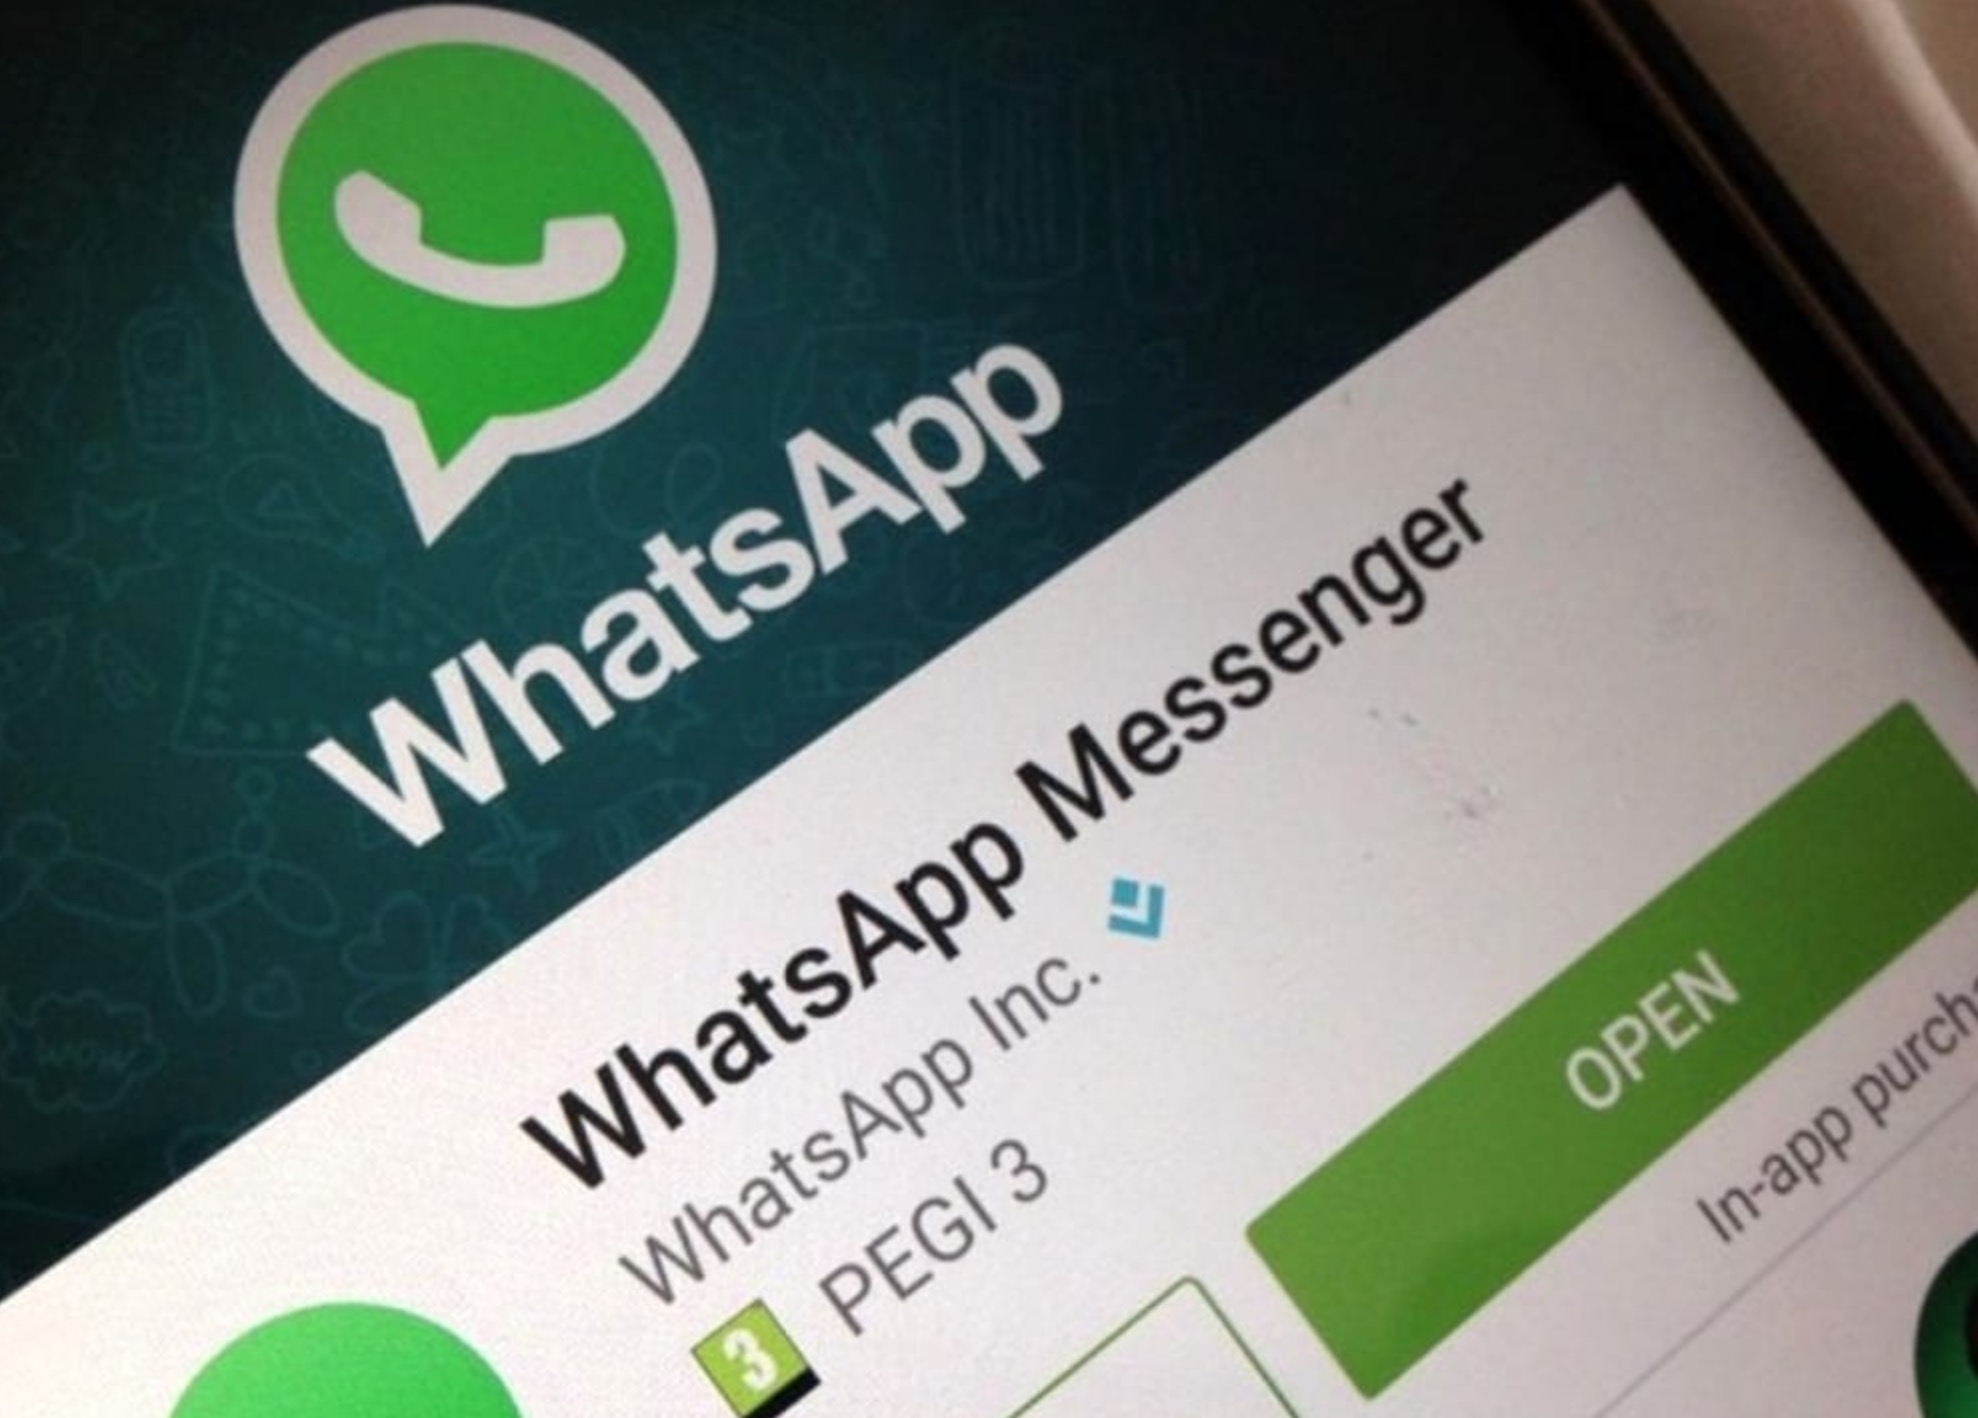 Nuove faccine WhatsApp Android e iPhone